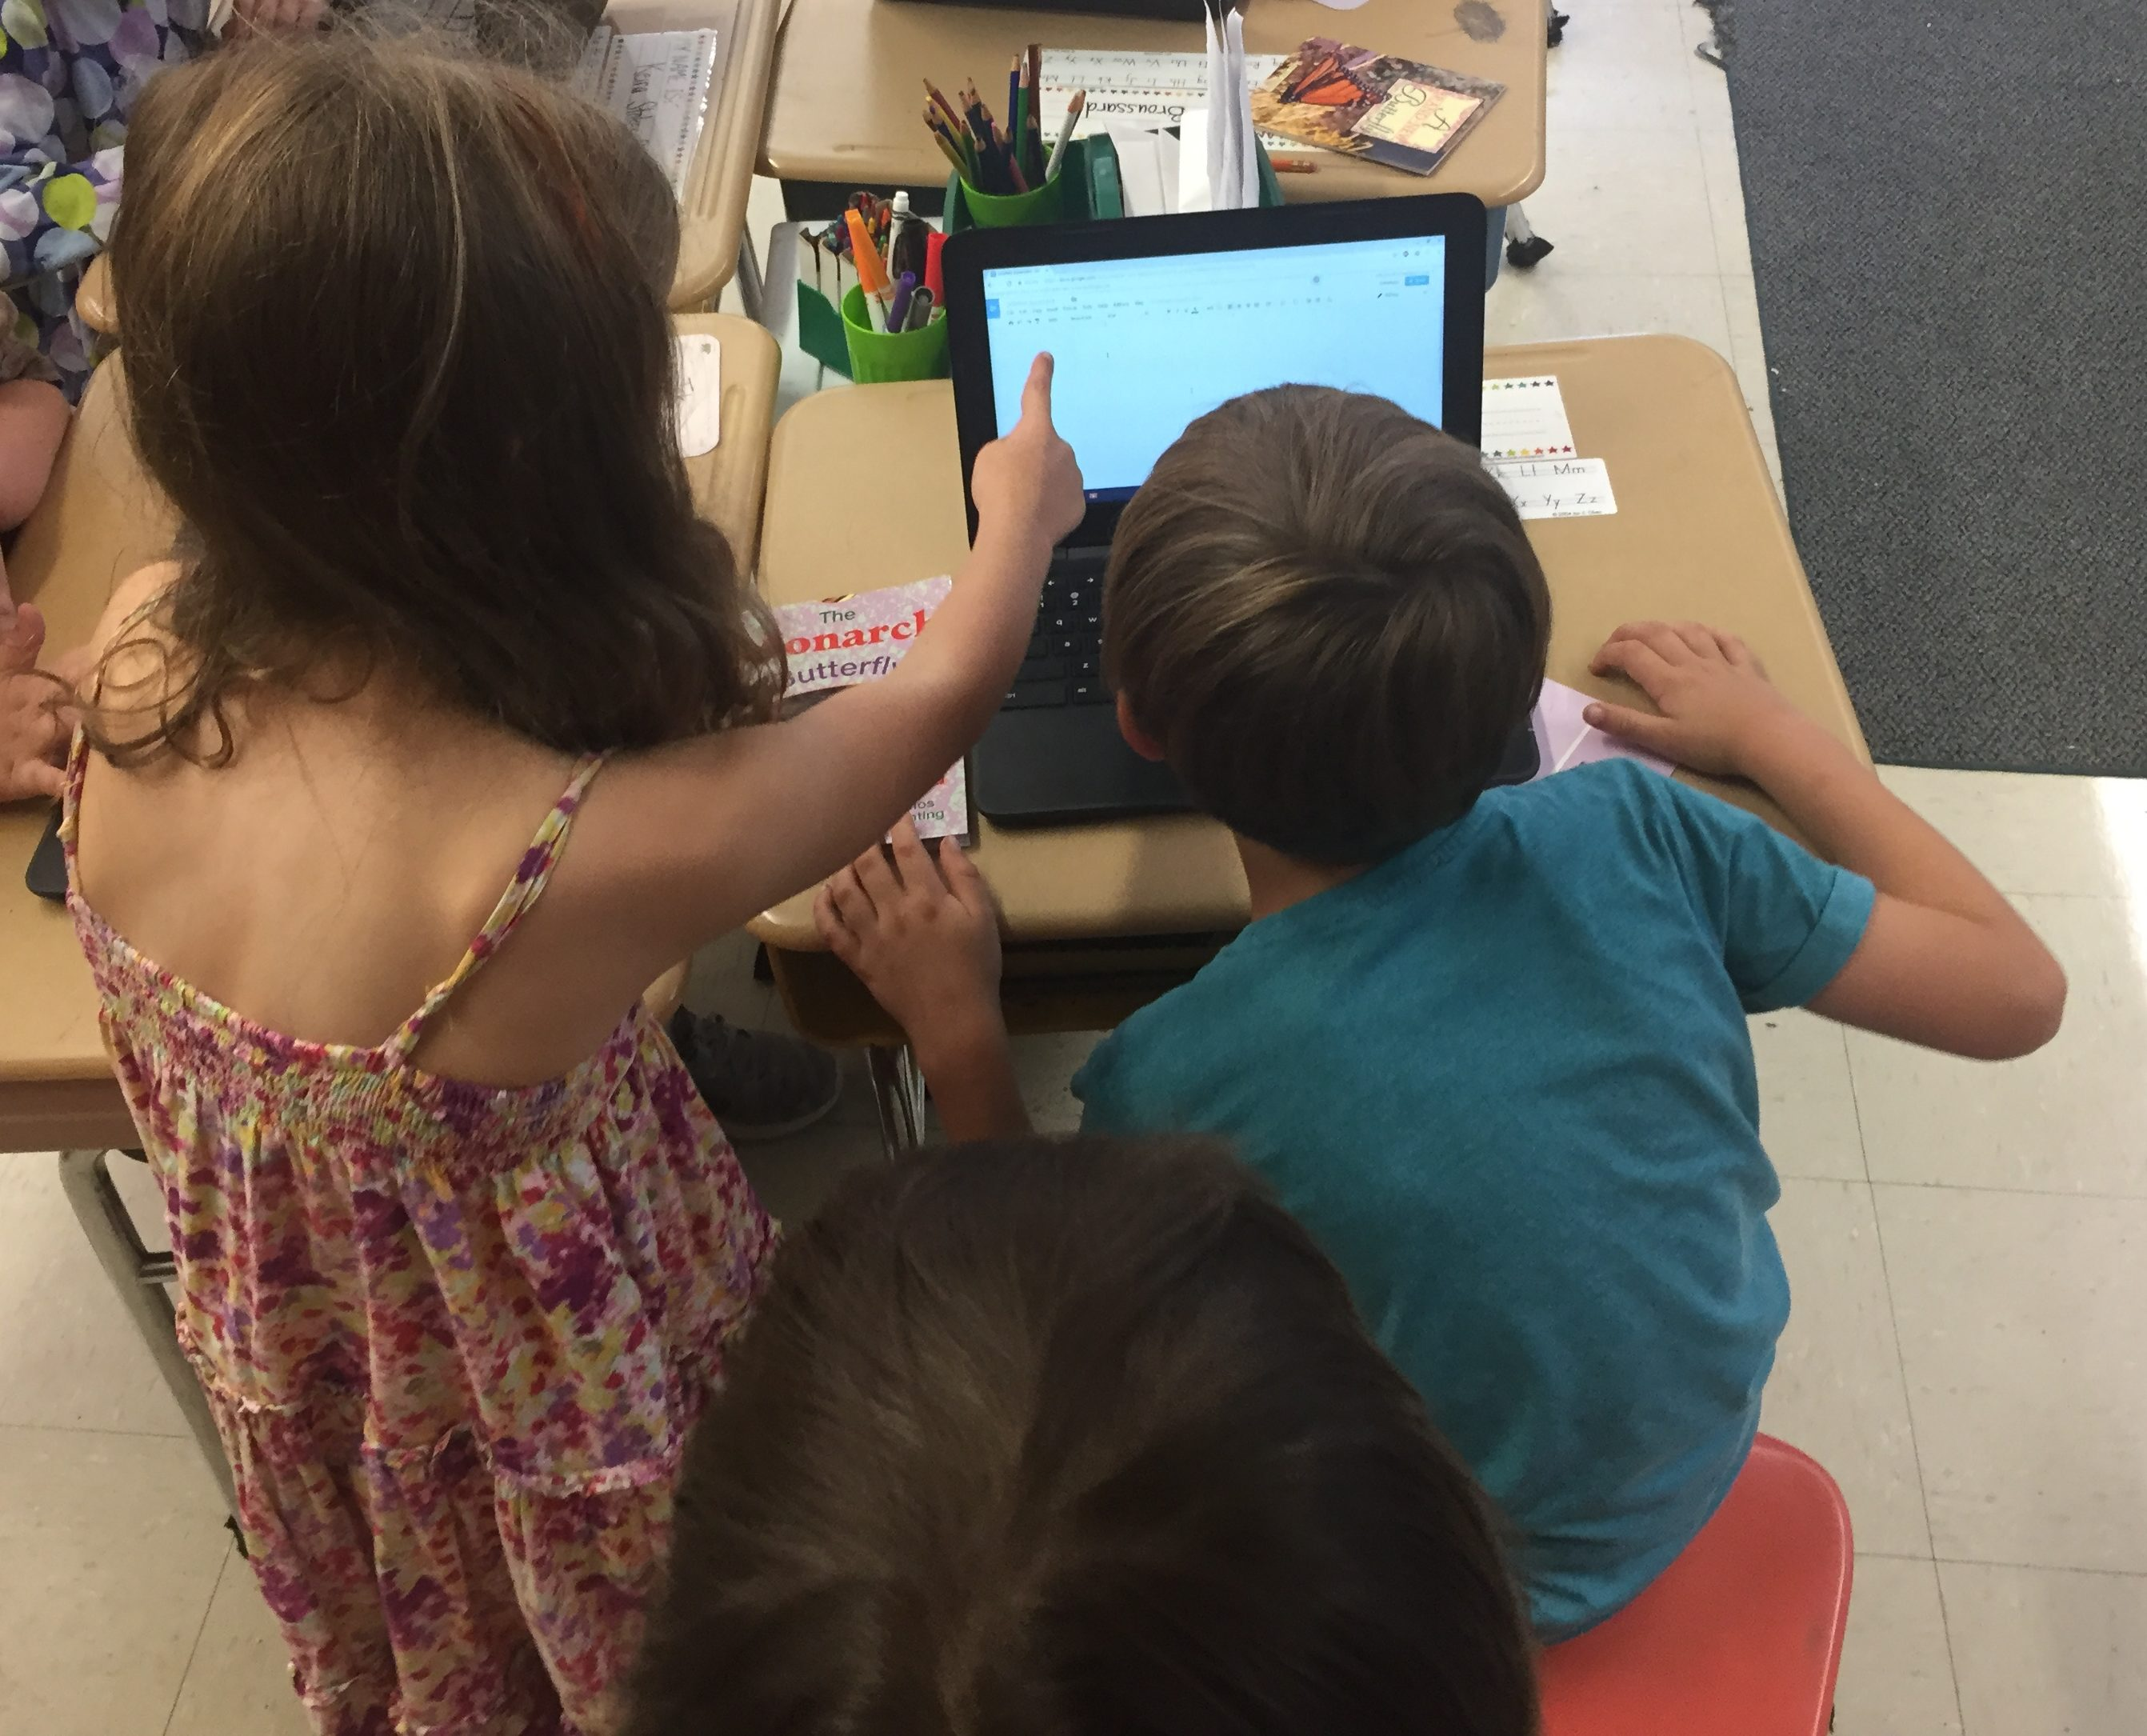 A standing student in a dress points to a chromebook screen to help out a student in a blue shirt sitting at desk.